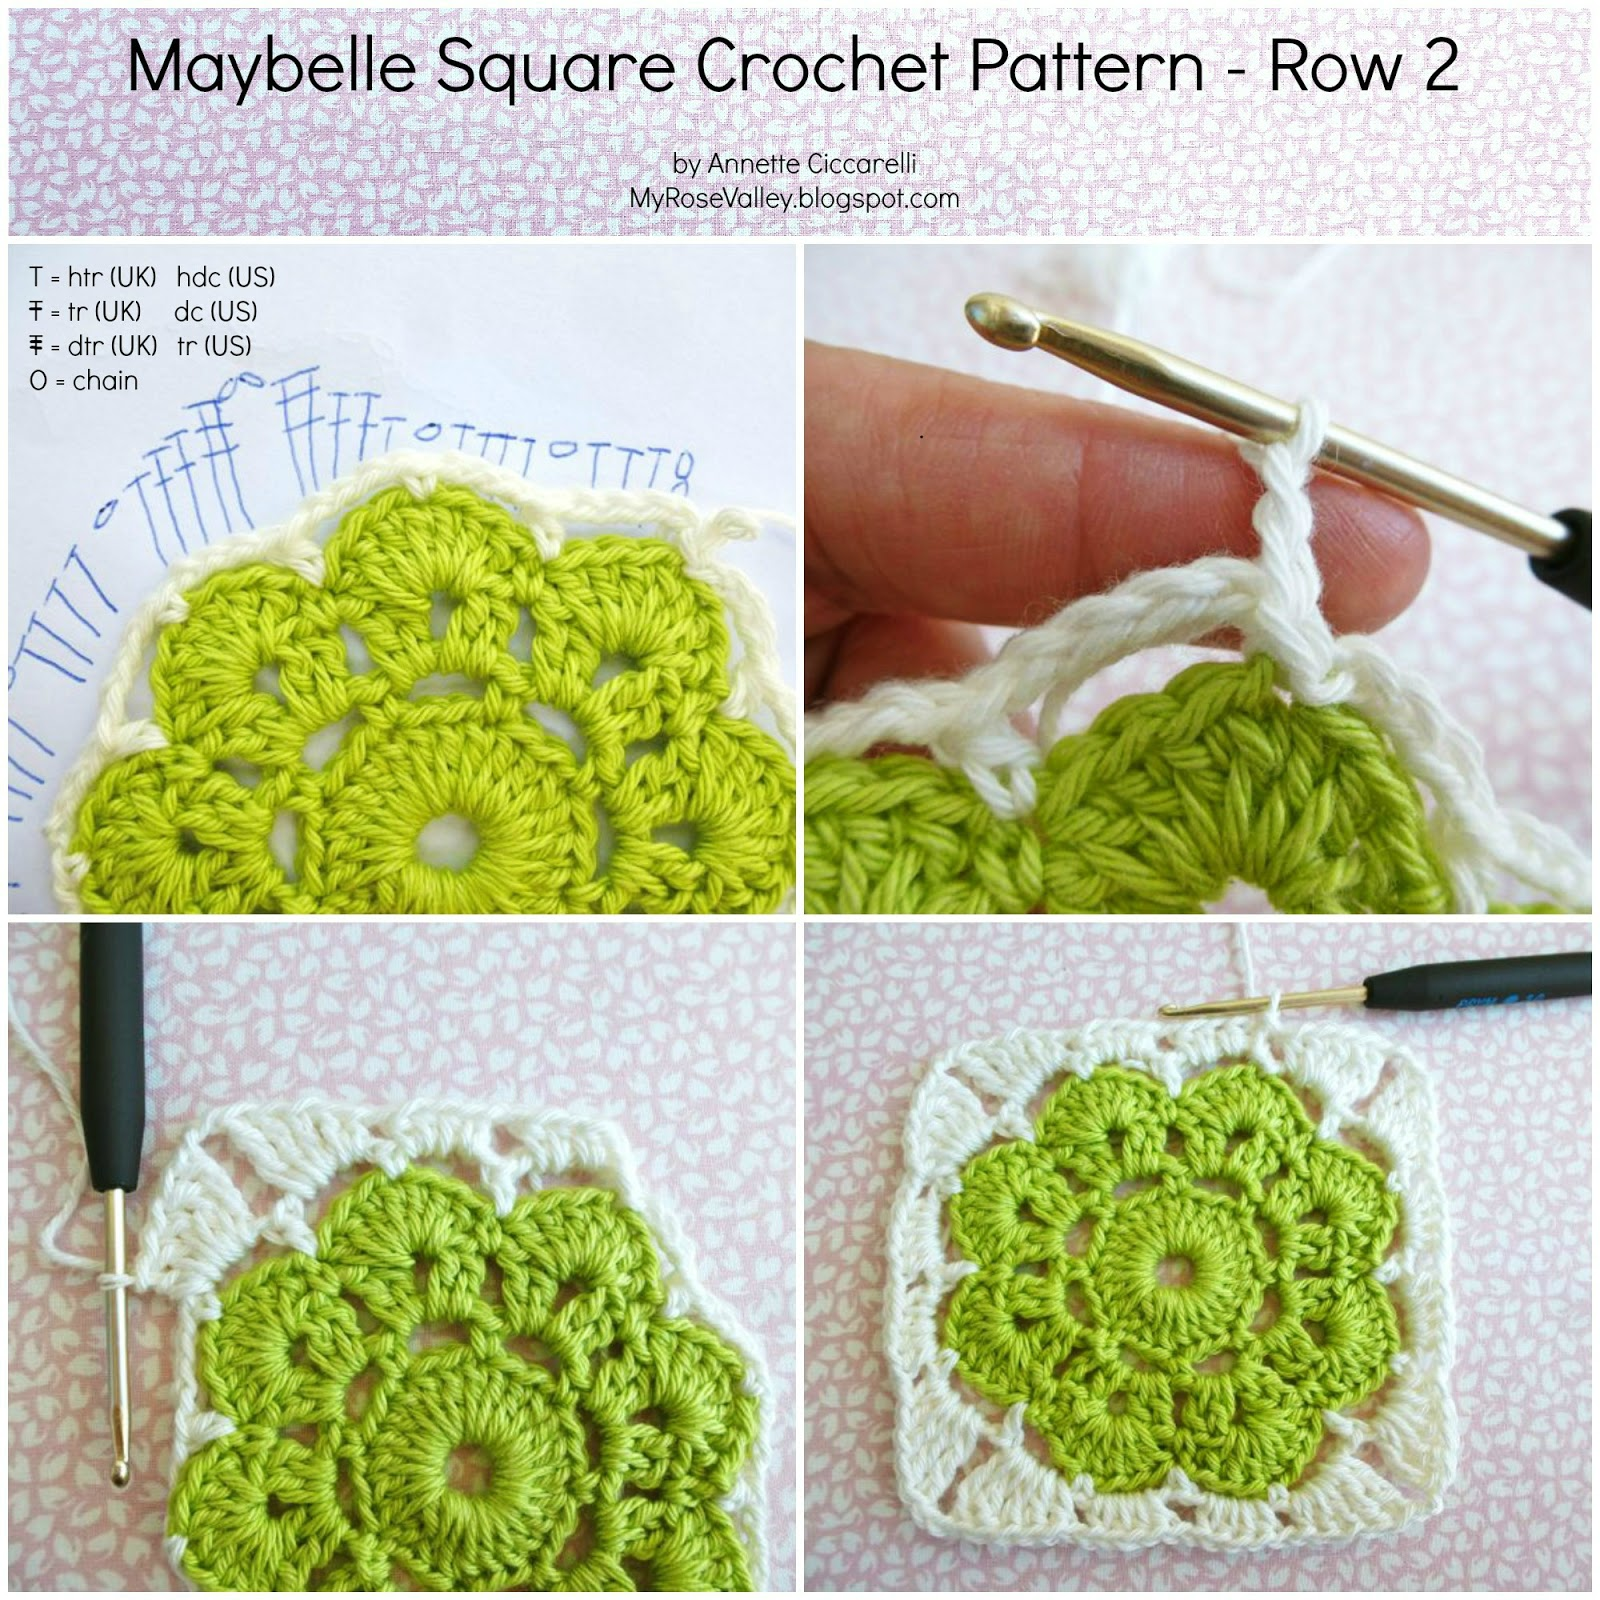 My Rose Valley Maybelle Square Crochet Pattern Flower Diagram Row 2 This Is Worked Into The Chain Spaces Slip Stitch First Space Make Ch2 Counts As Htr Hdc 3htr 3hdc A Total Of 4htr In